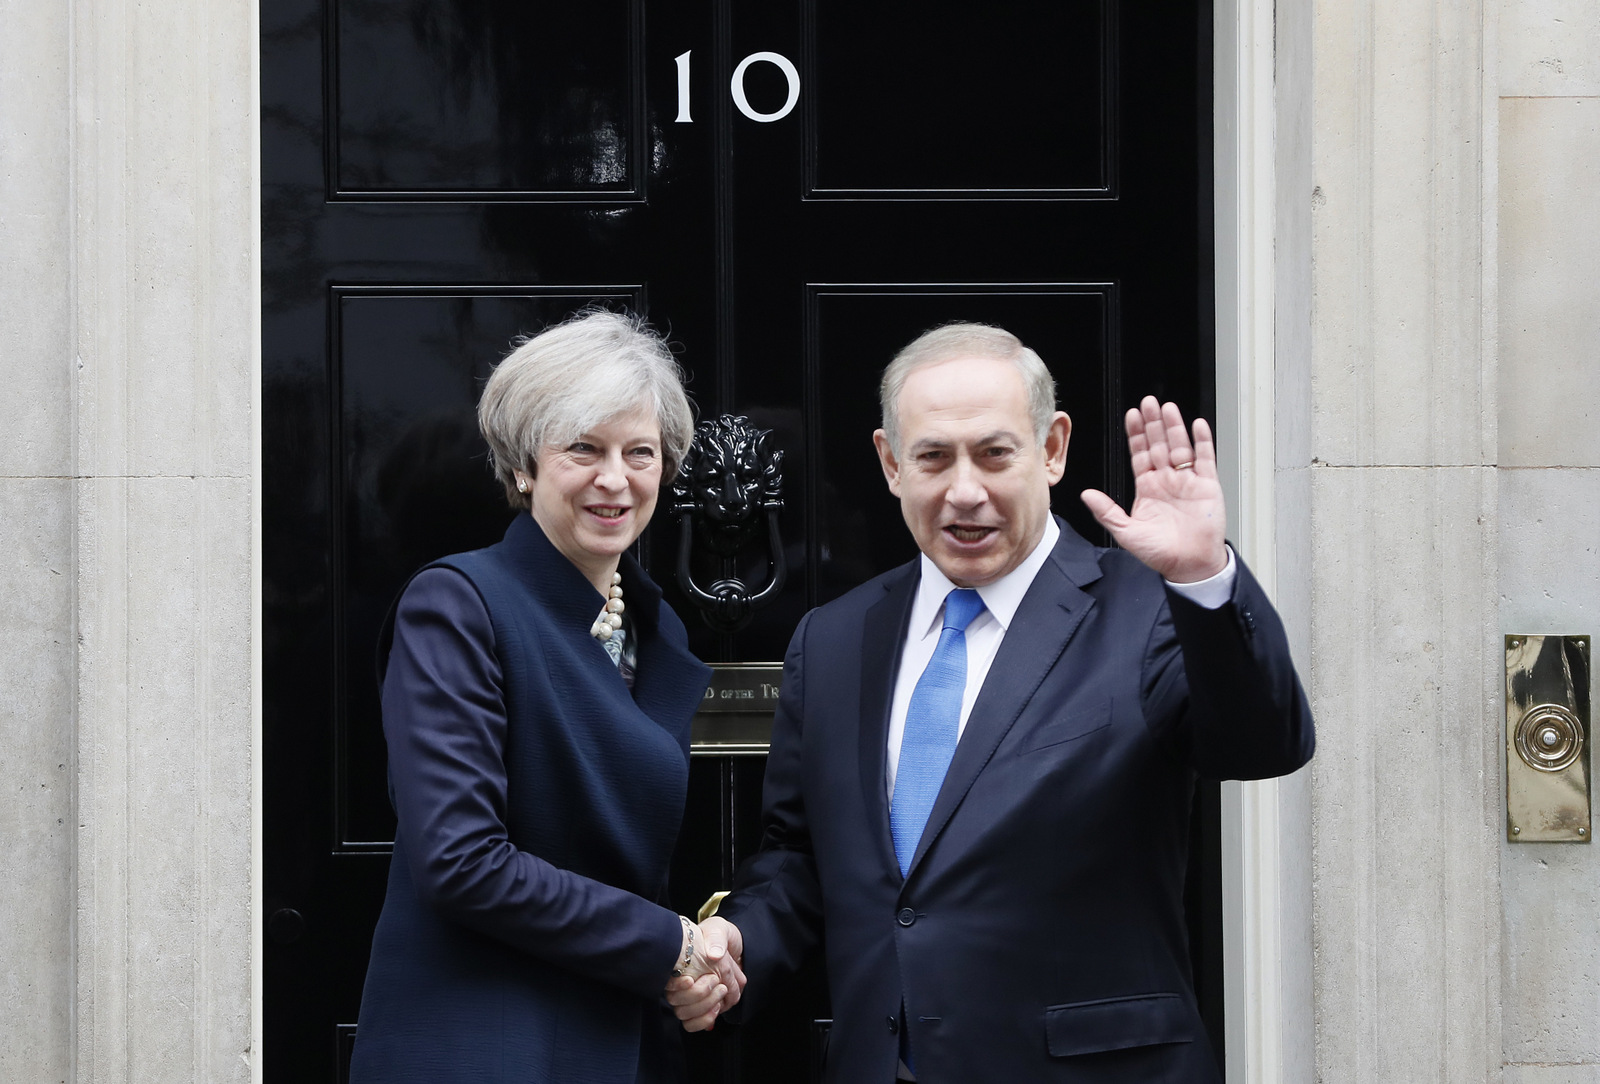 Britain's Prime Minister Theresa May greets Prime Minister Benjamin Netanyahu of Israel at Downing Street in London, Monday, Feb. 6, 2017. (AP/Kirsty Wigglesworth)